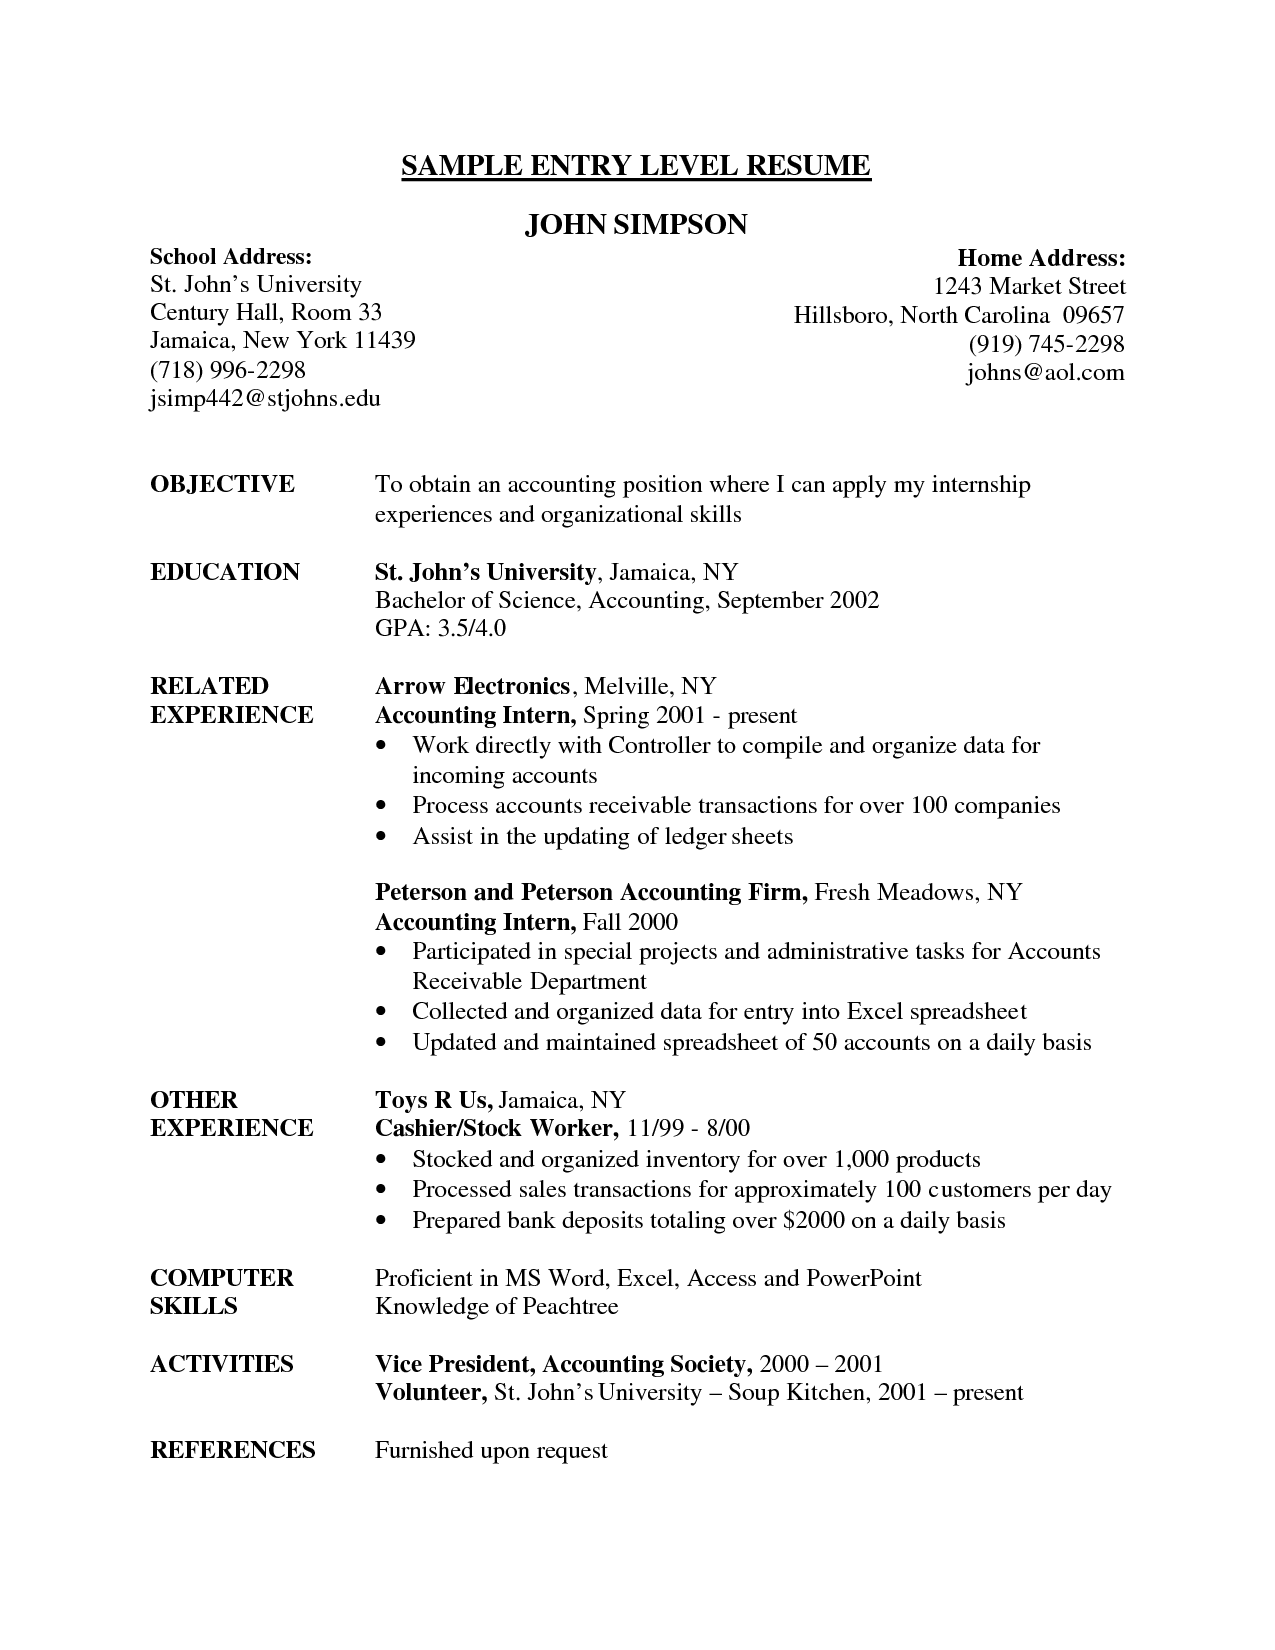 resume sample templates entry level resume examples template entry level resume examples